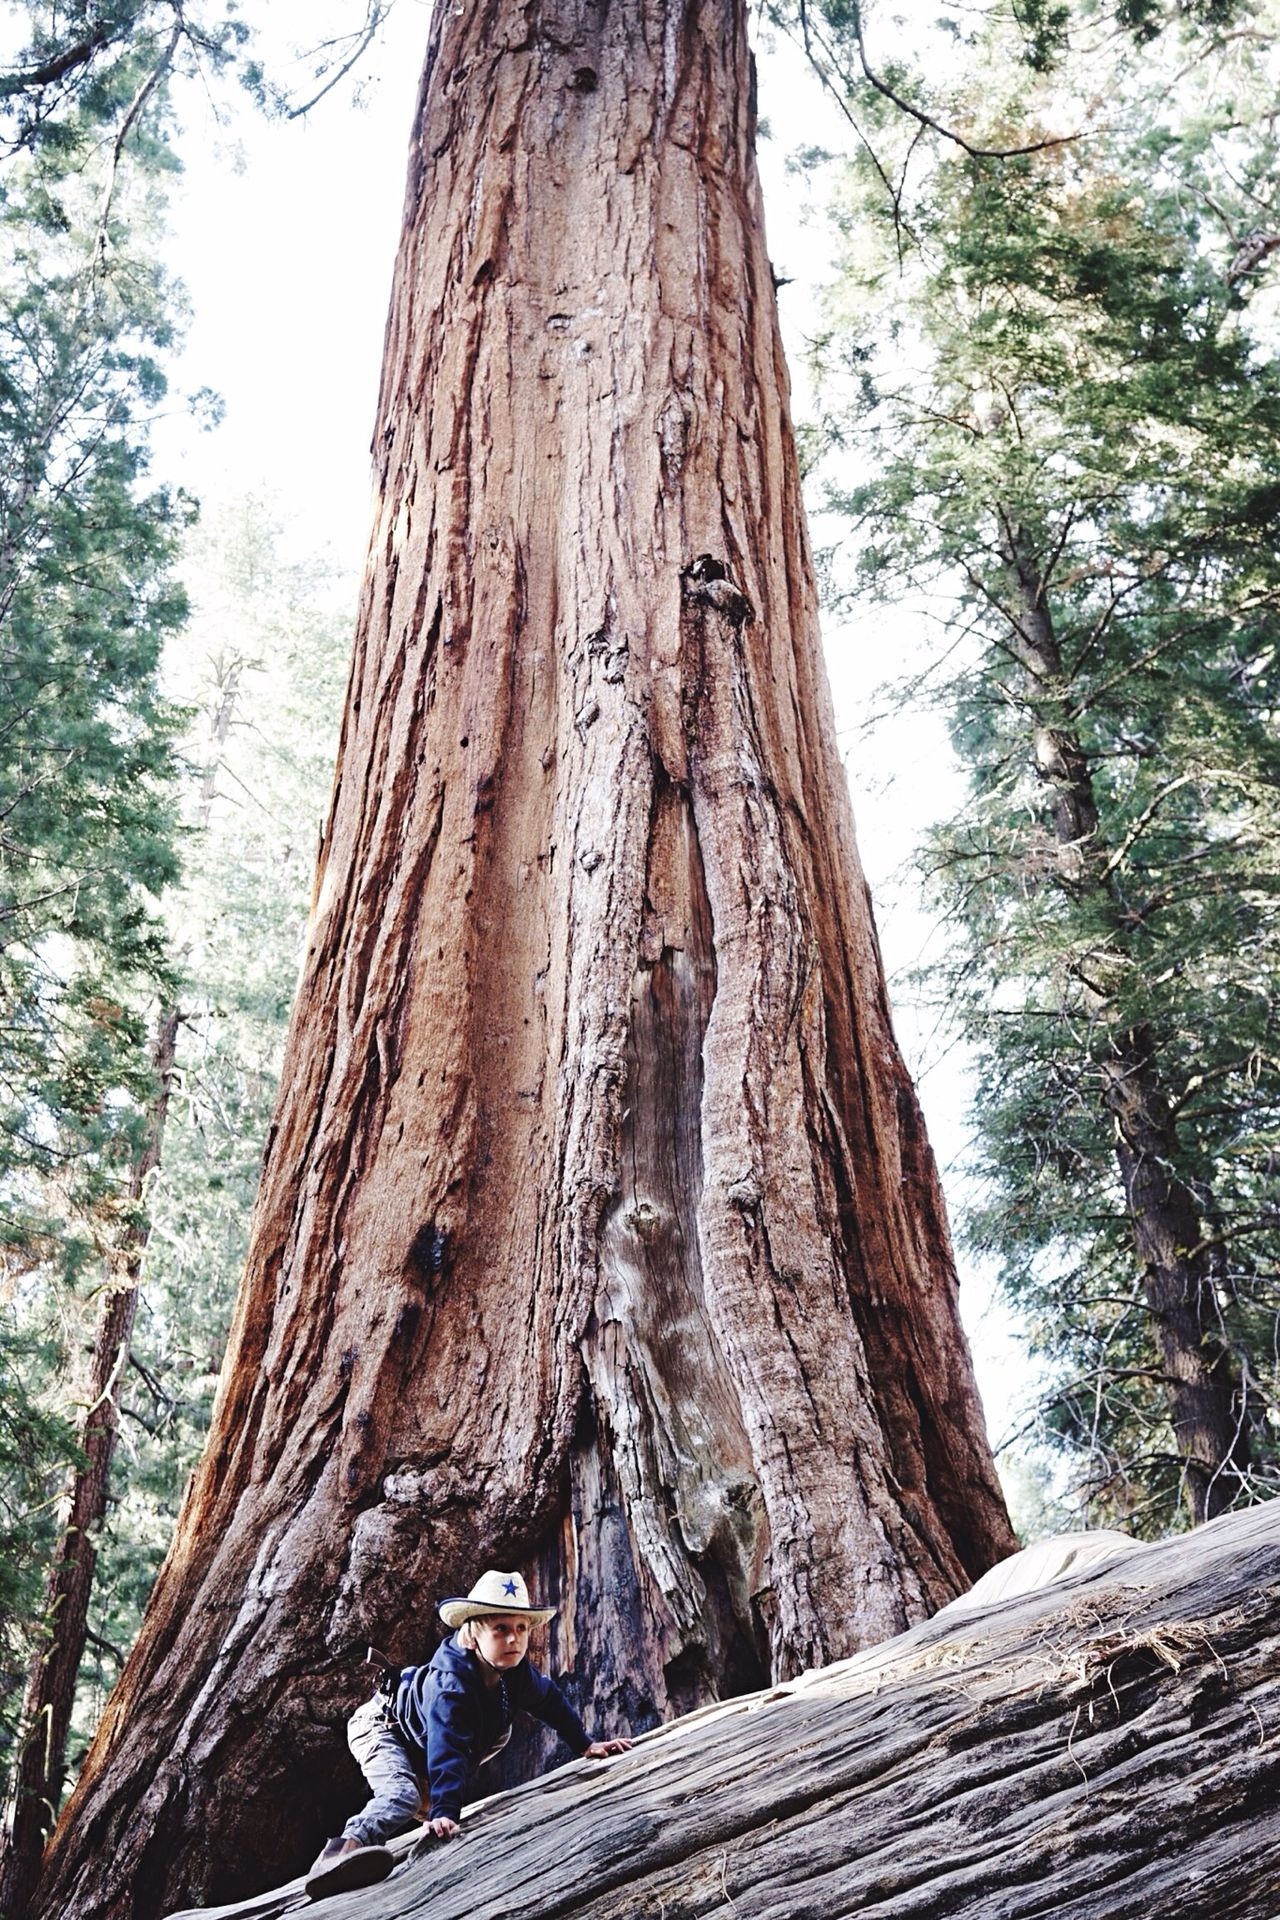 Sequoia Trees Nature EyeEm Best Shots Share Your Adventure California Little boy and giant tree The Adventure Handbook Things I Like The Great Outdoors - 2016 EyeEm Awards The Great Outdoors With Adobe The Secret Spaces